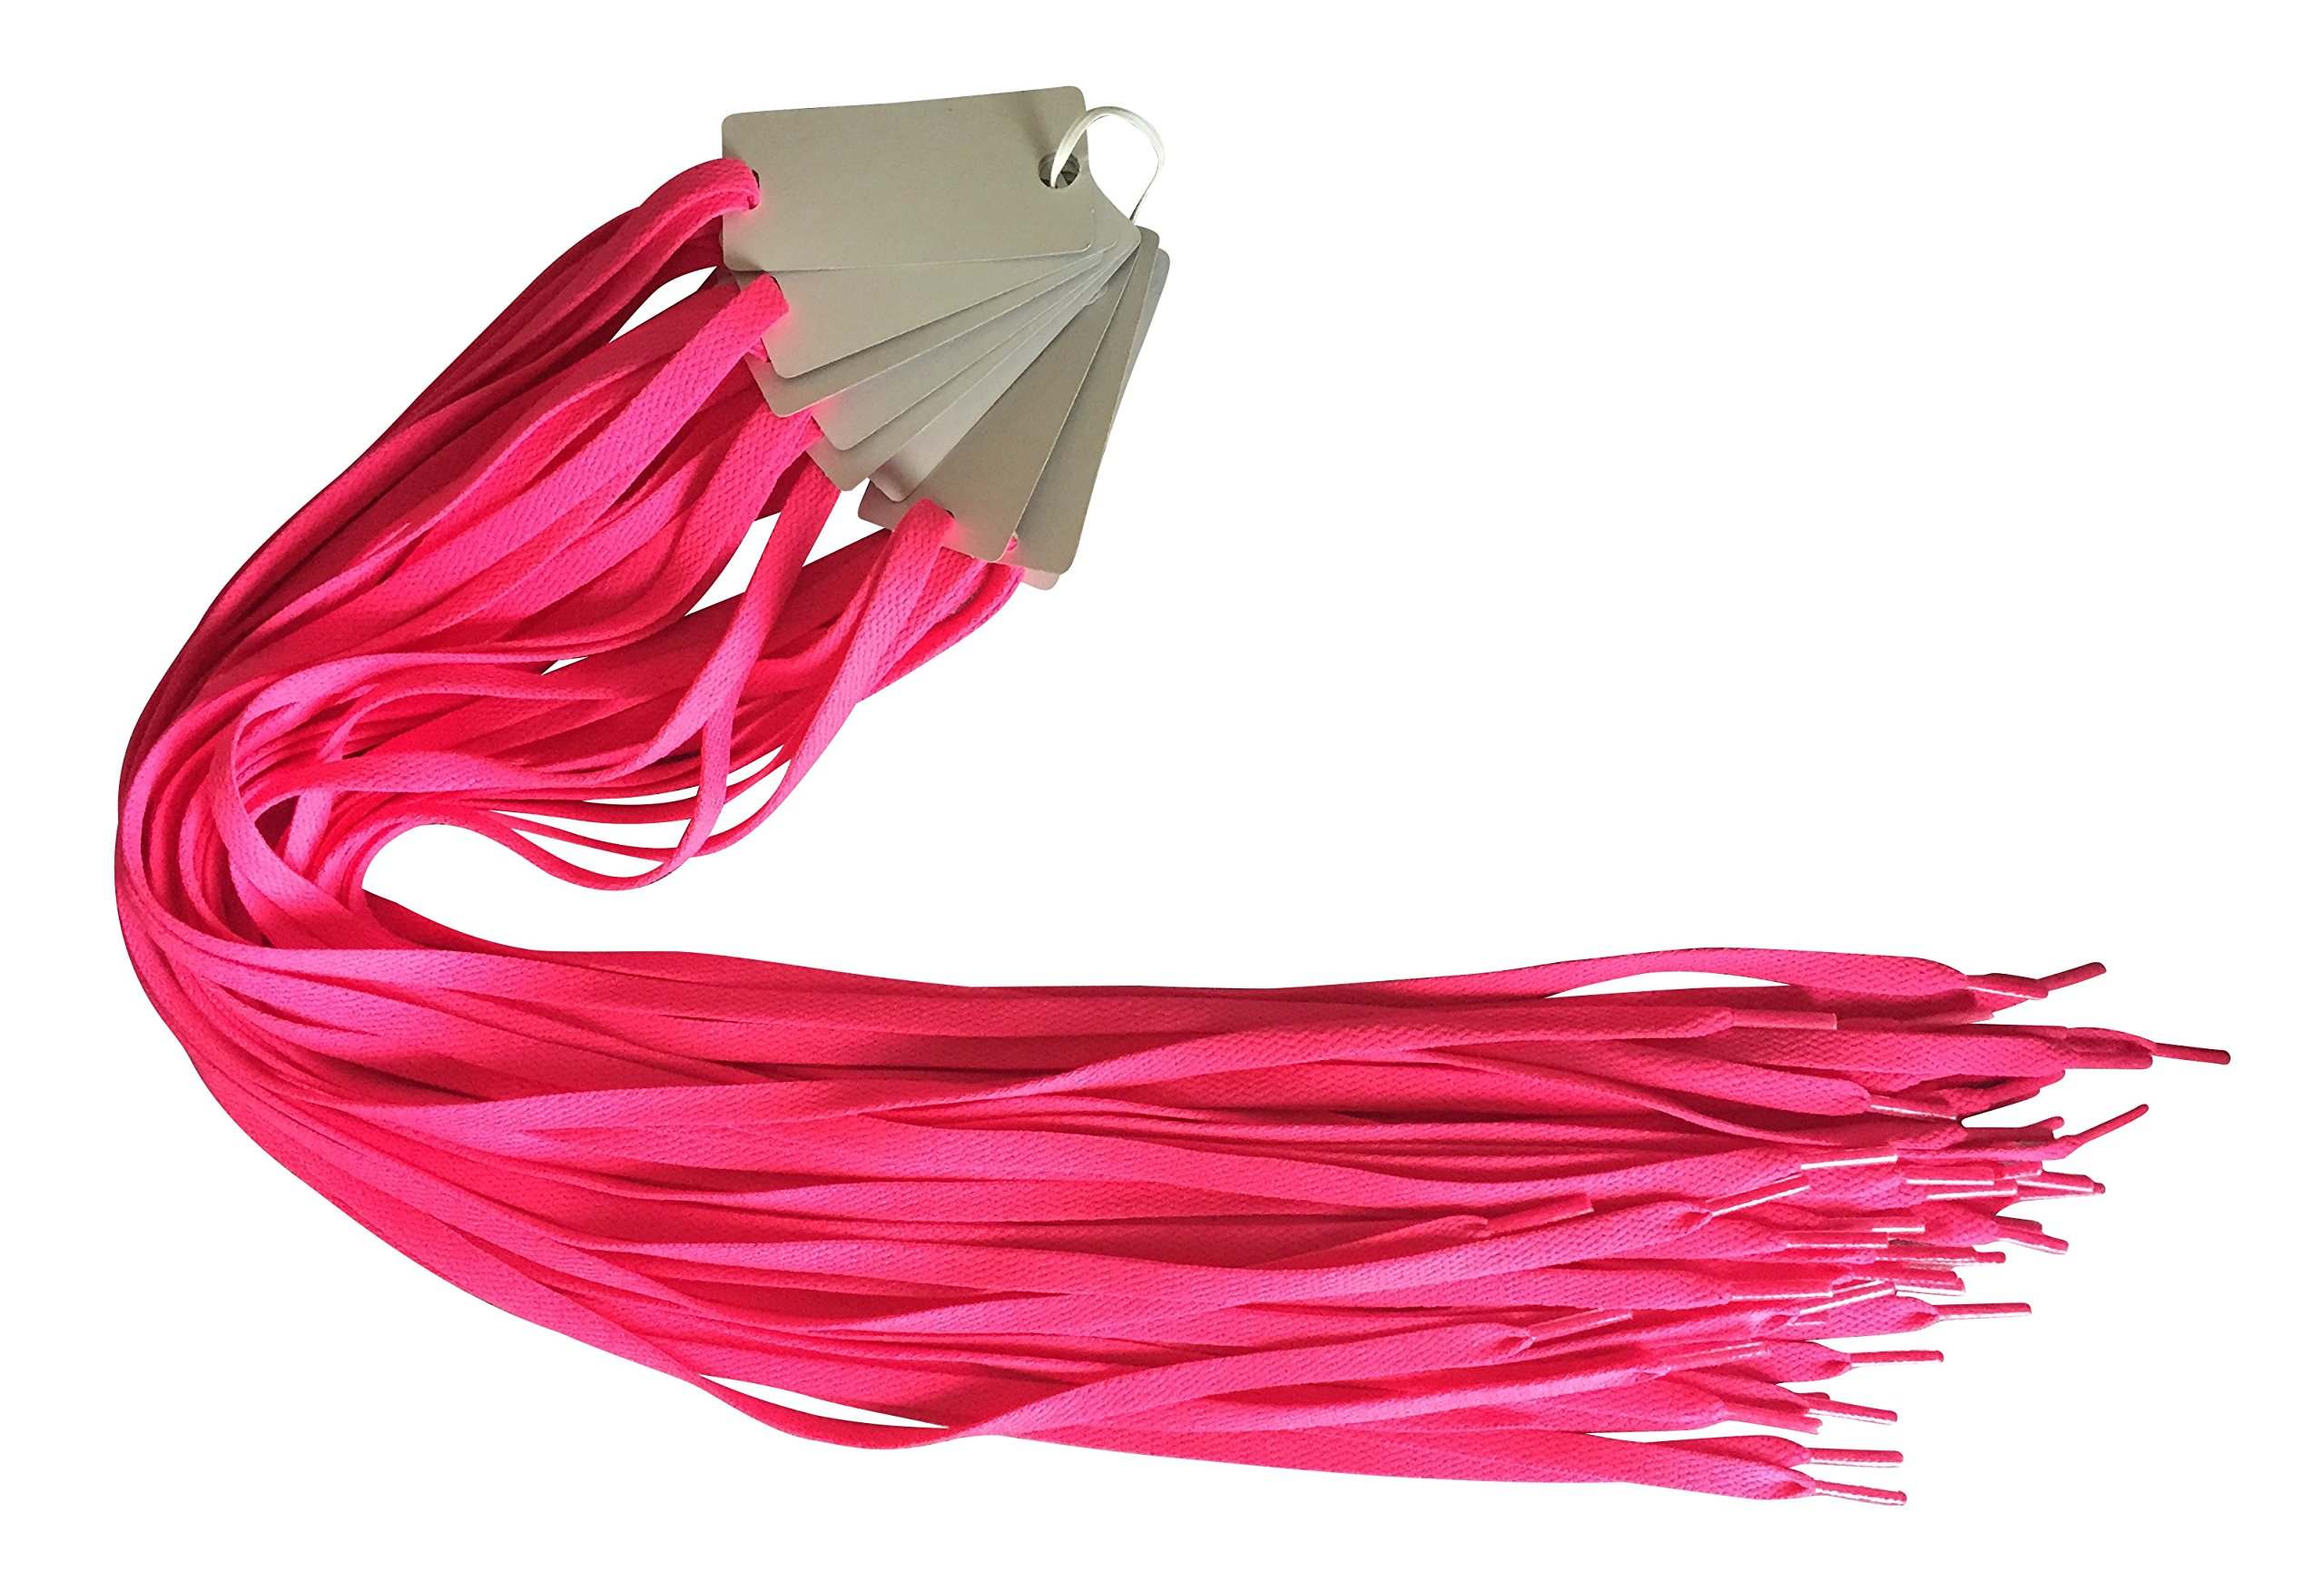 Neon Pink 10 Pairs Athletic Flat 8mm Shoelaces Bulk Lot (Breast Cancer Awareness) - 45''